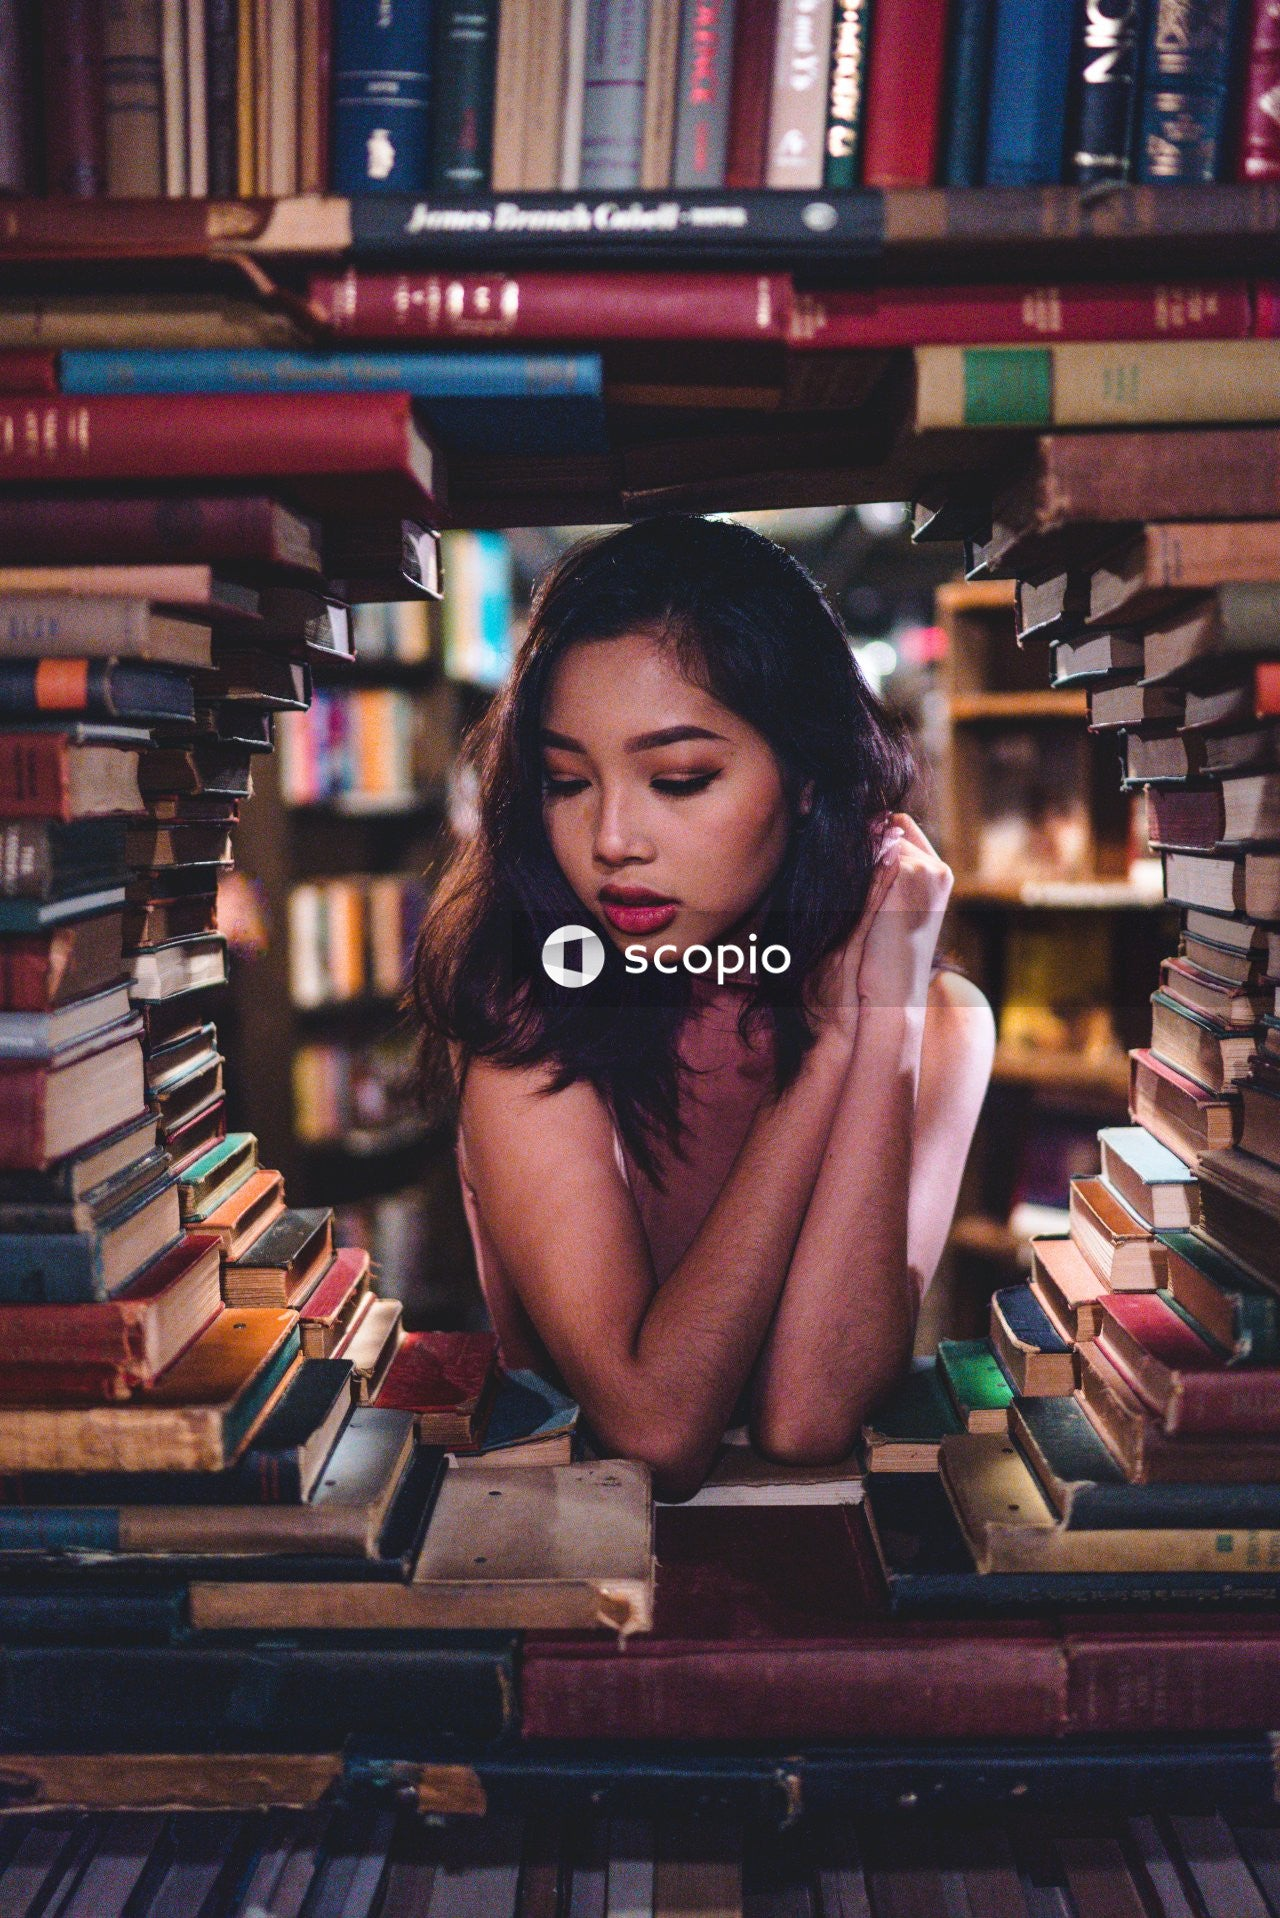 Shallow focus photo of woman near books